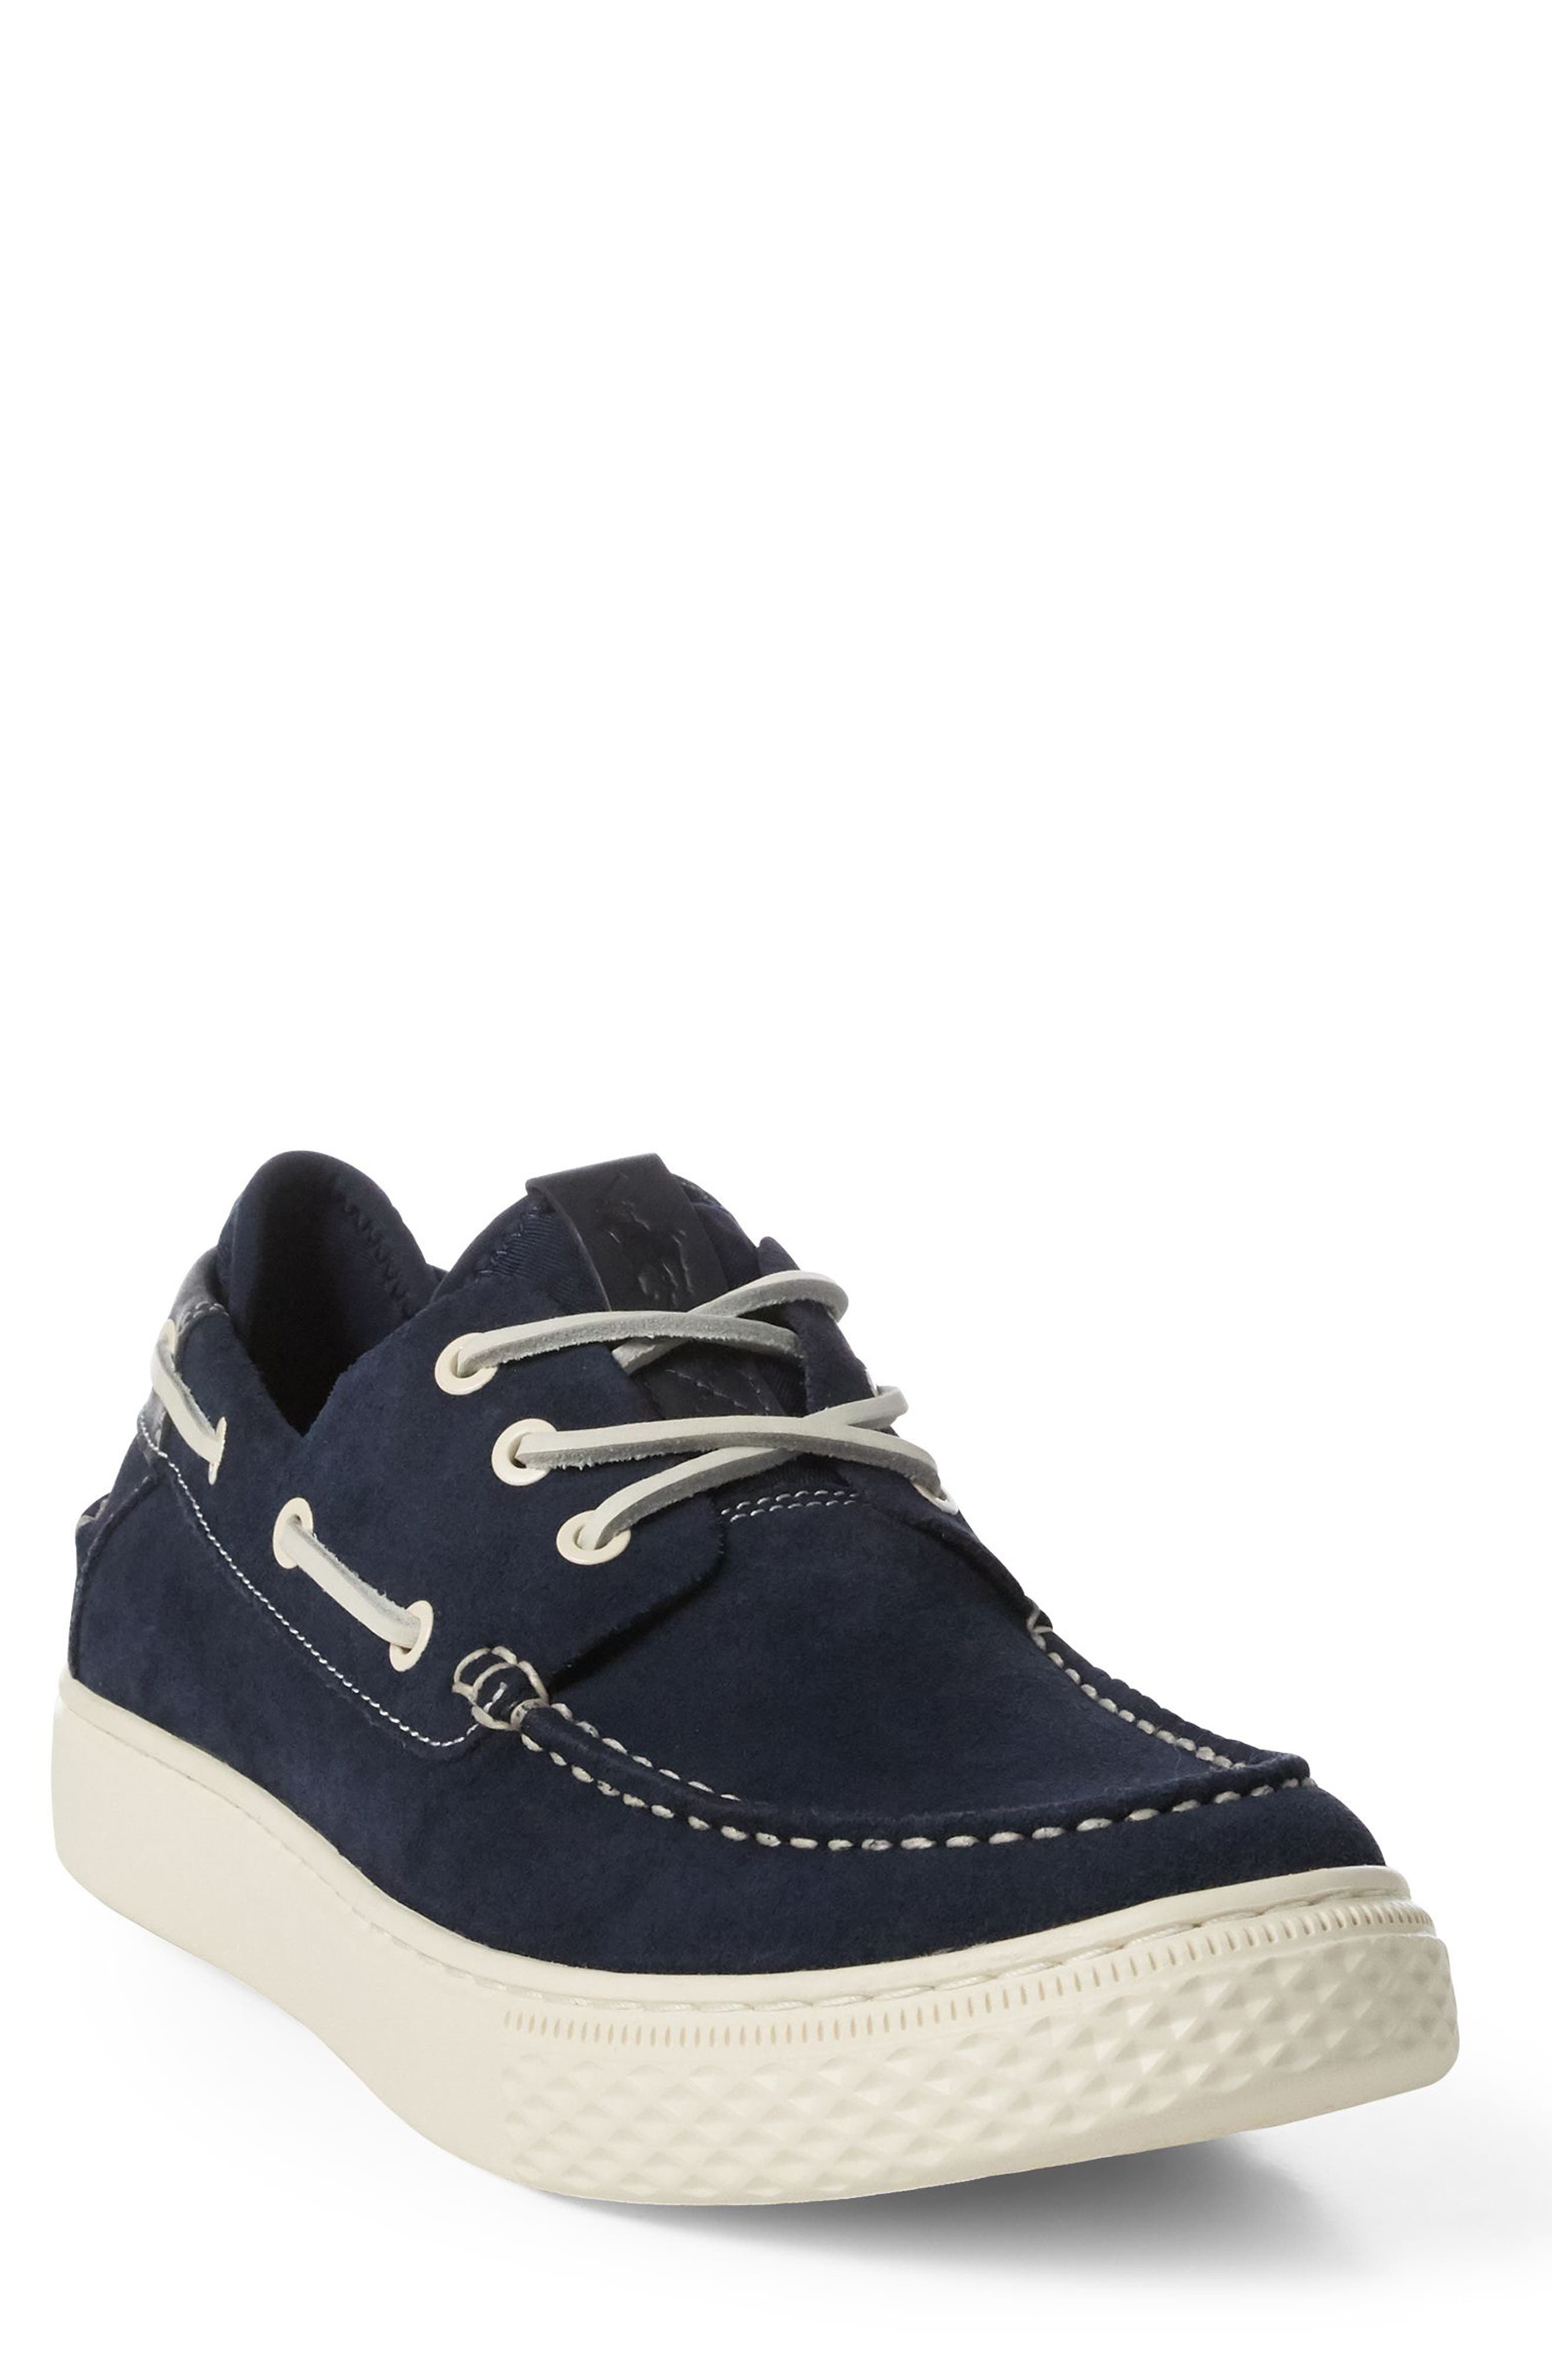 cbc1491eb357 Polo Ralph Lauren - Men s Casual Fashion Shoes and Sneakers